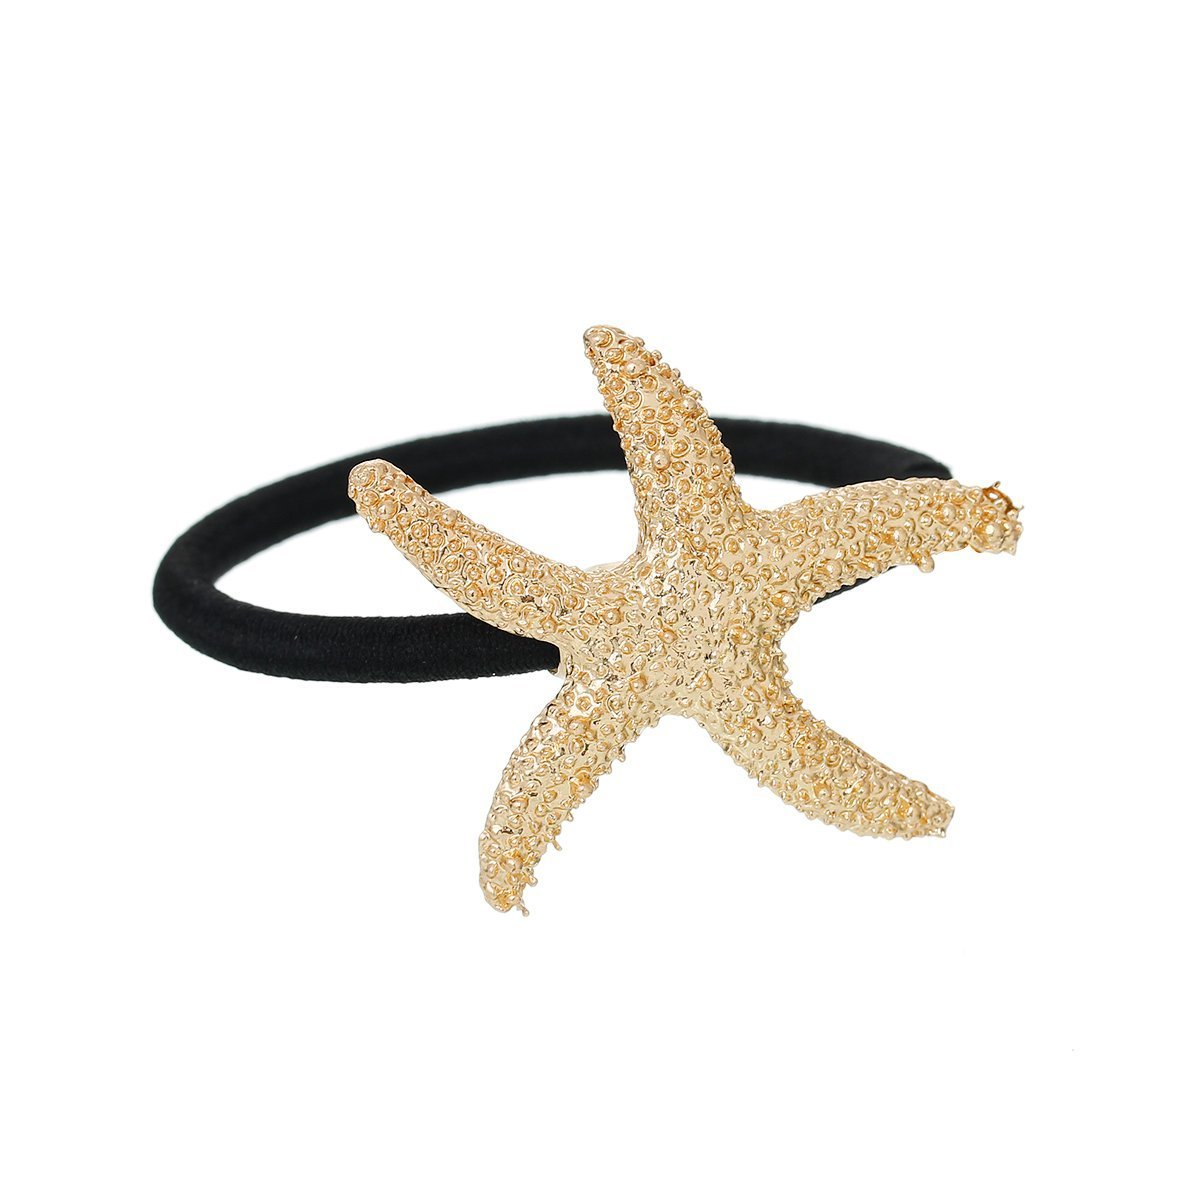 Nylon Cirlce Ring Hair Band Ponytail Holder Black Acrylic Imitation Pearl Choose Your Style From Menu (Starfish A)